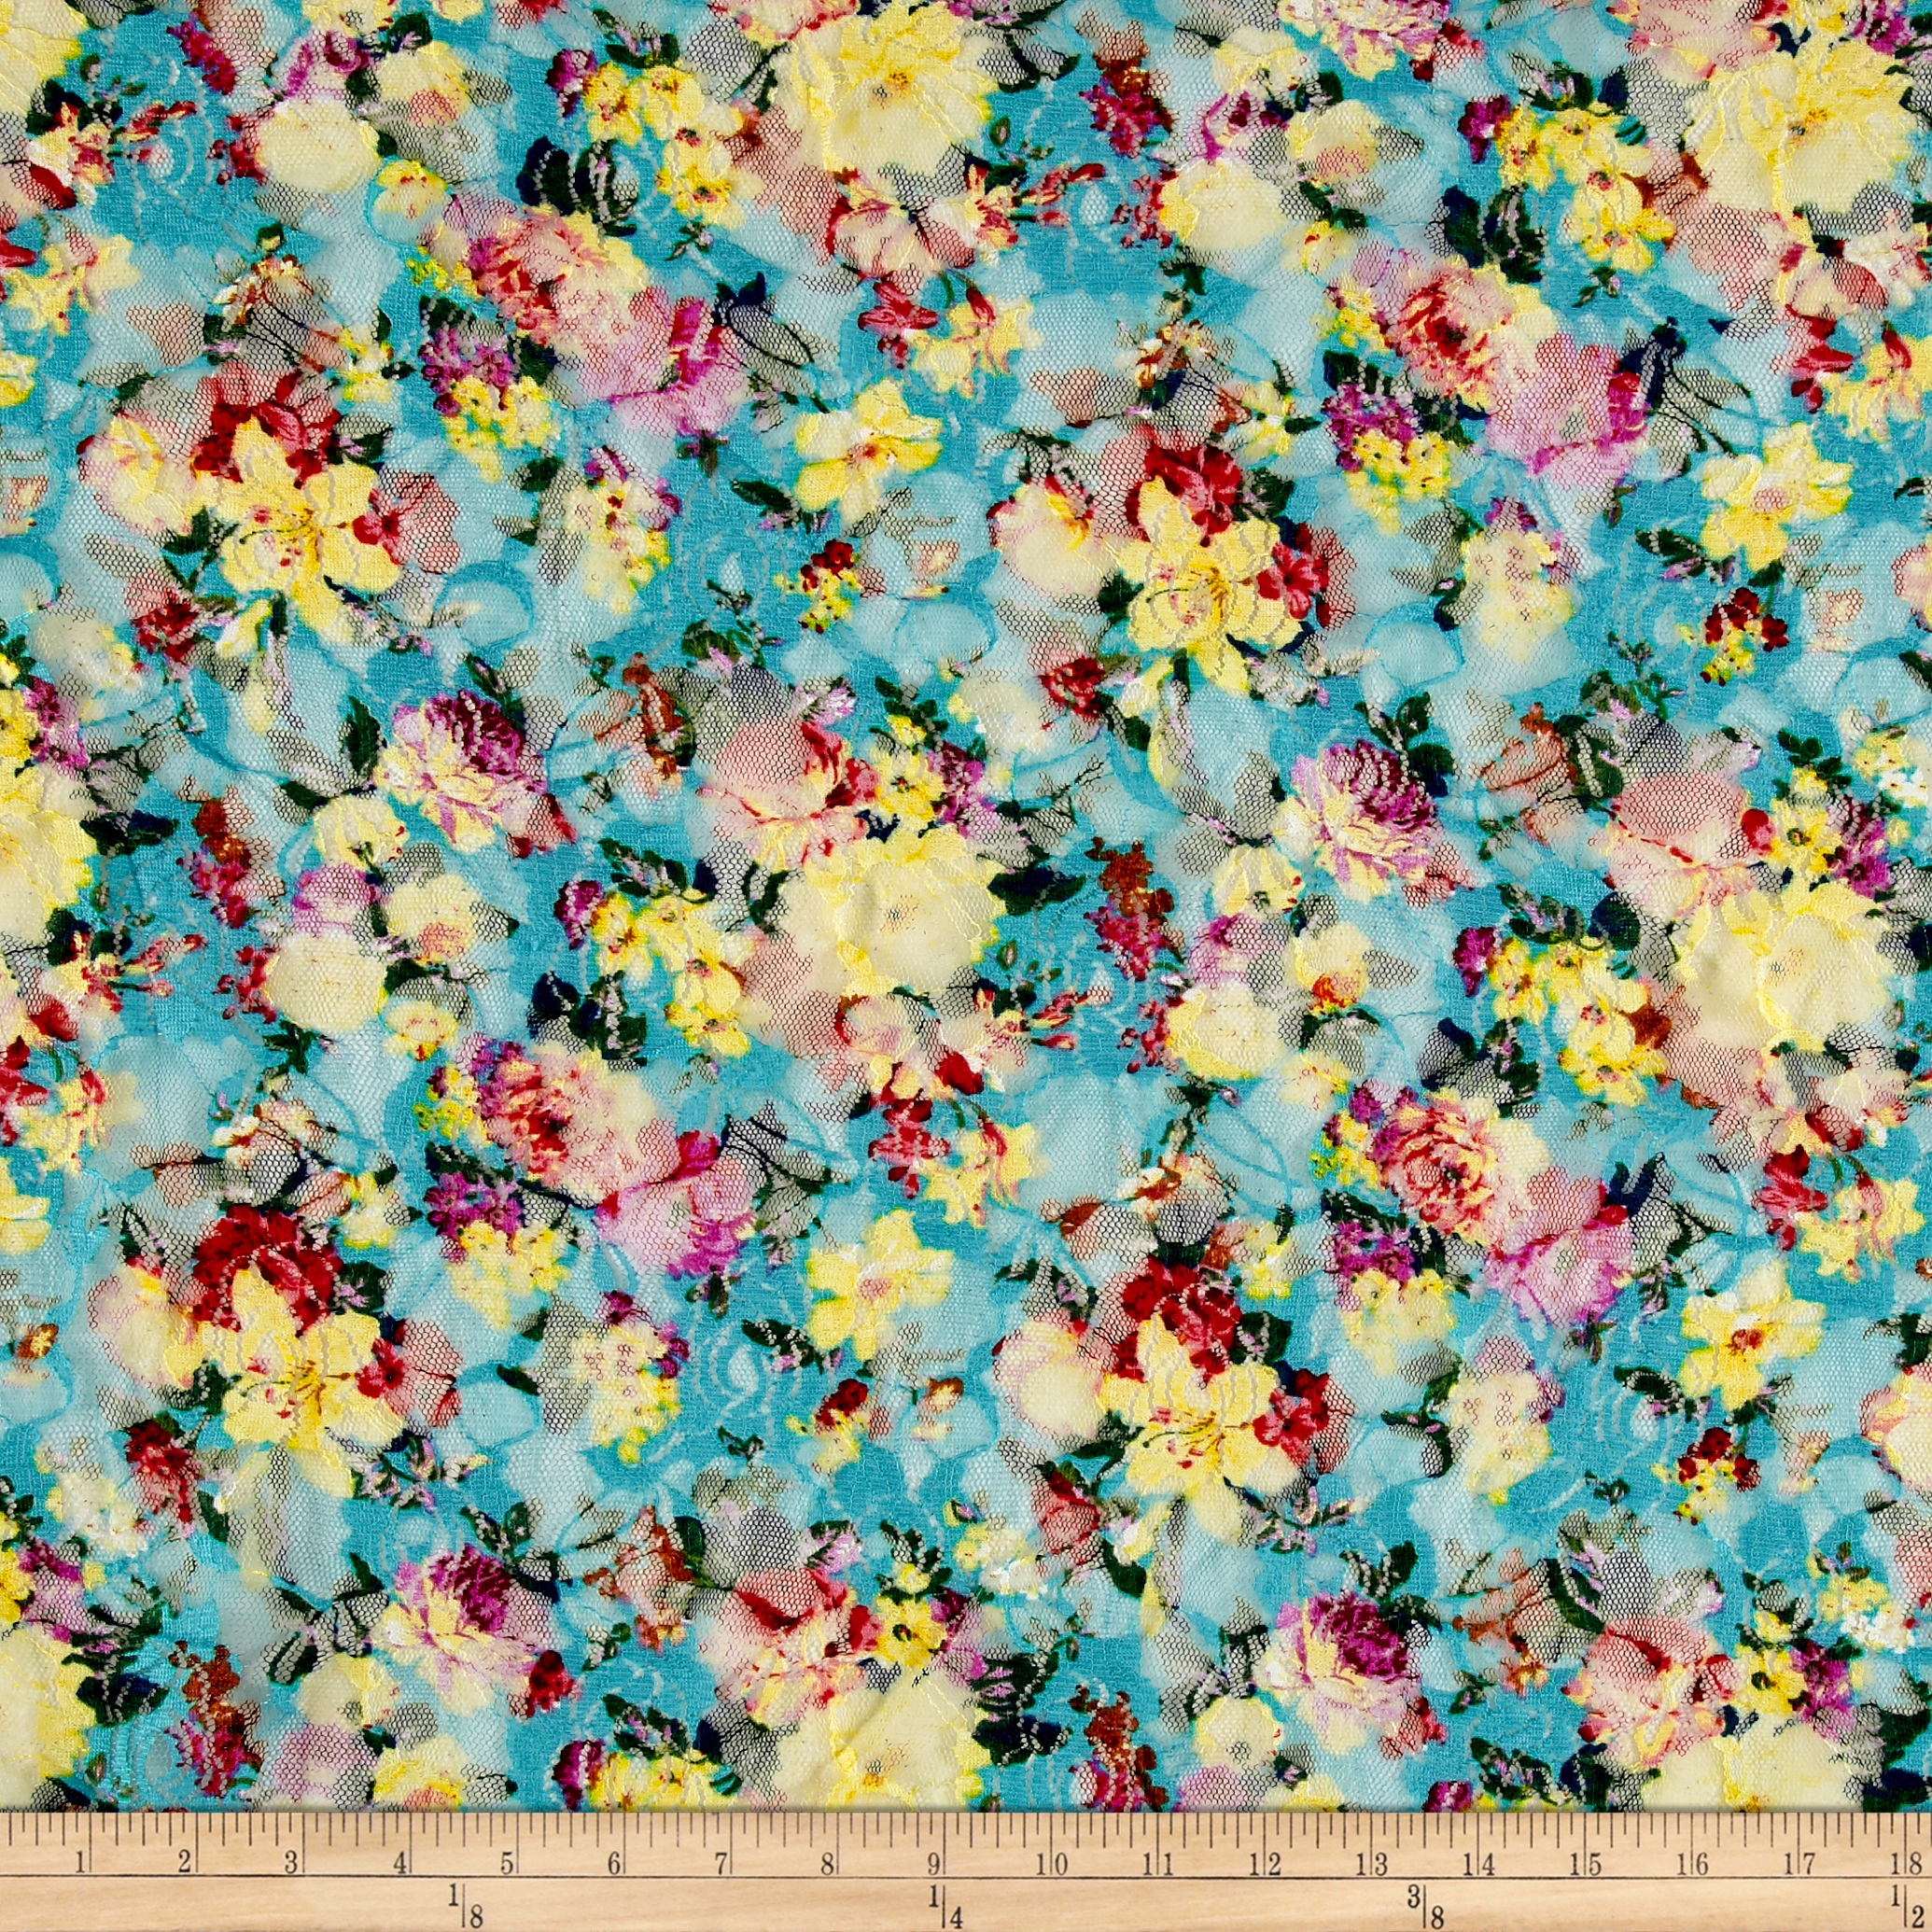 Stretch Floral Lace Cheery Multi Fabric by Fabric Merchants in USA